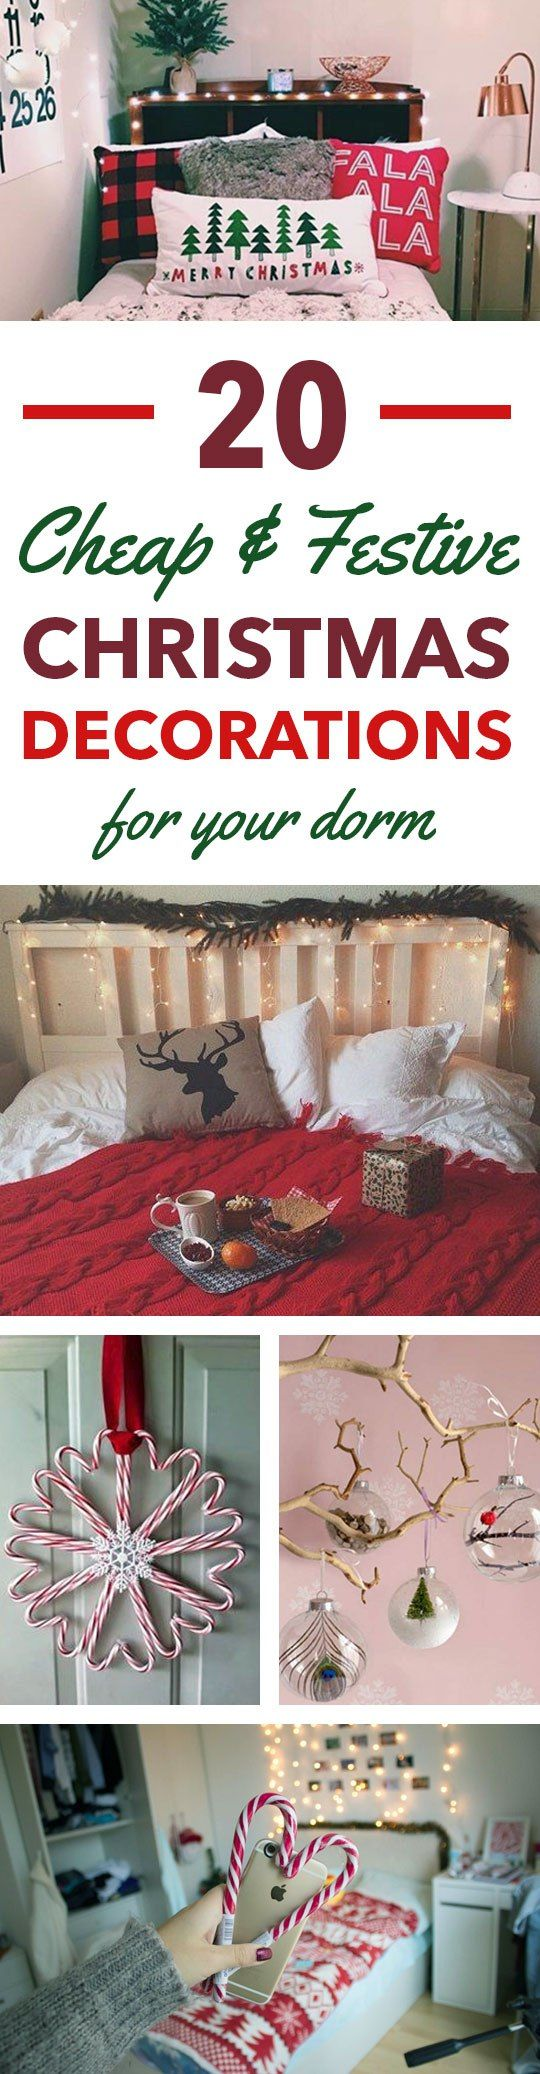 20 Cheap U0026 Festive Items To Decorate Your Dorm For Christmas Part 46